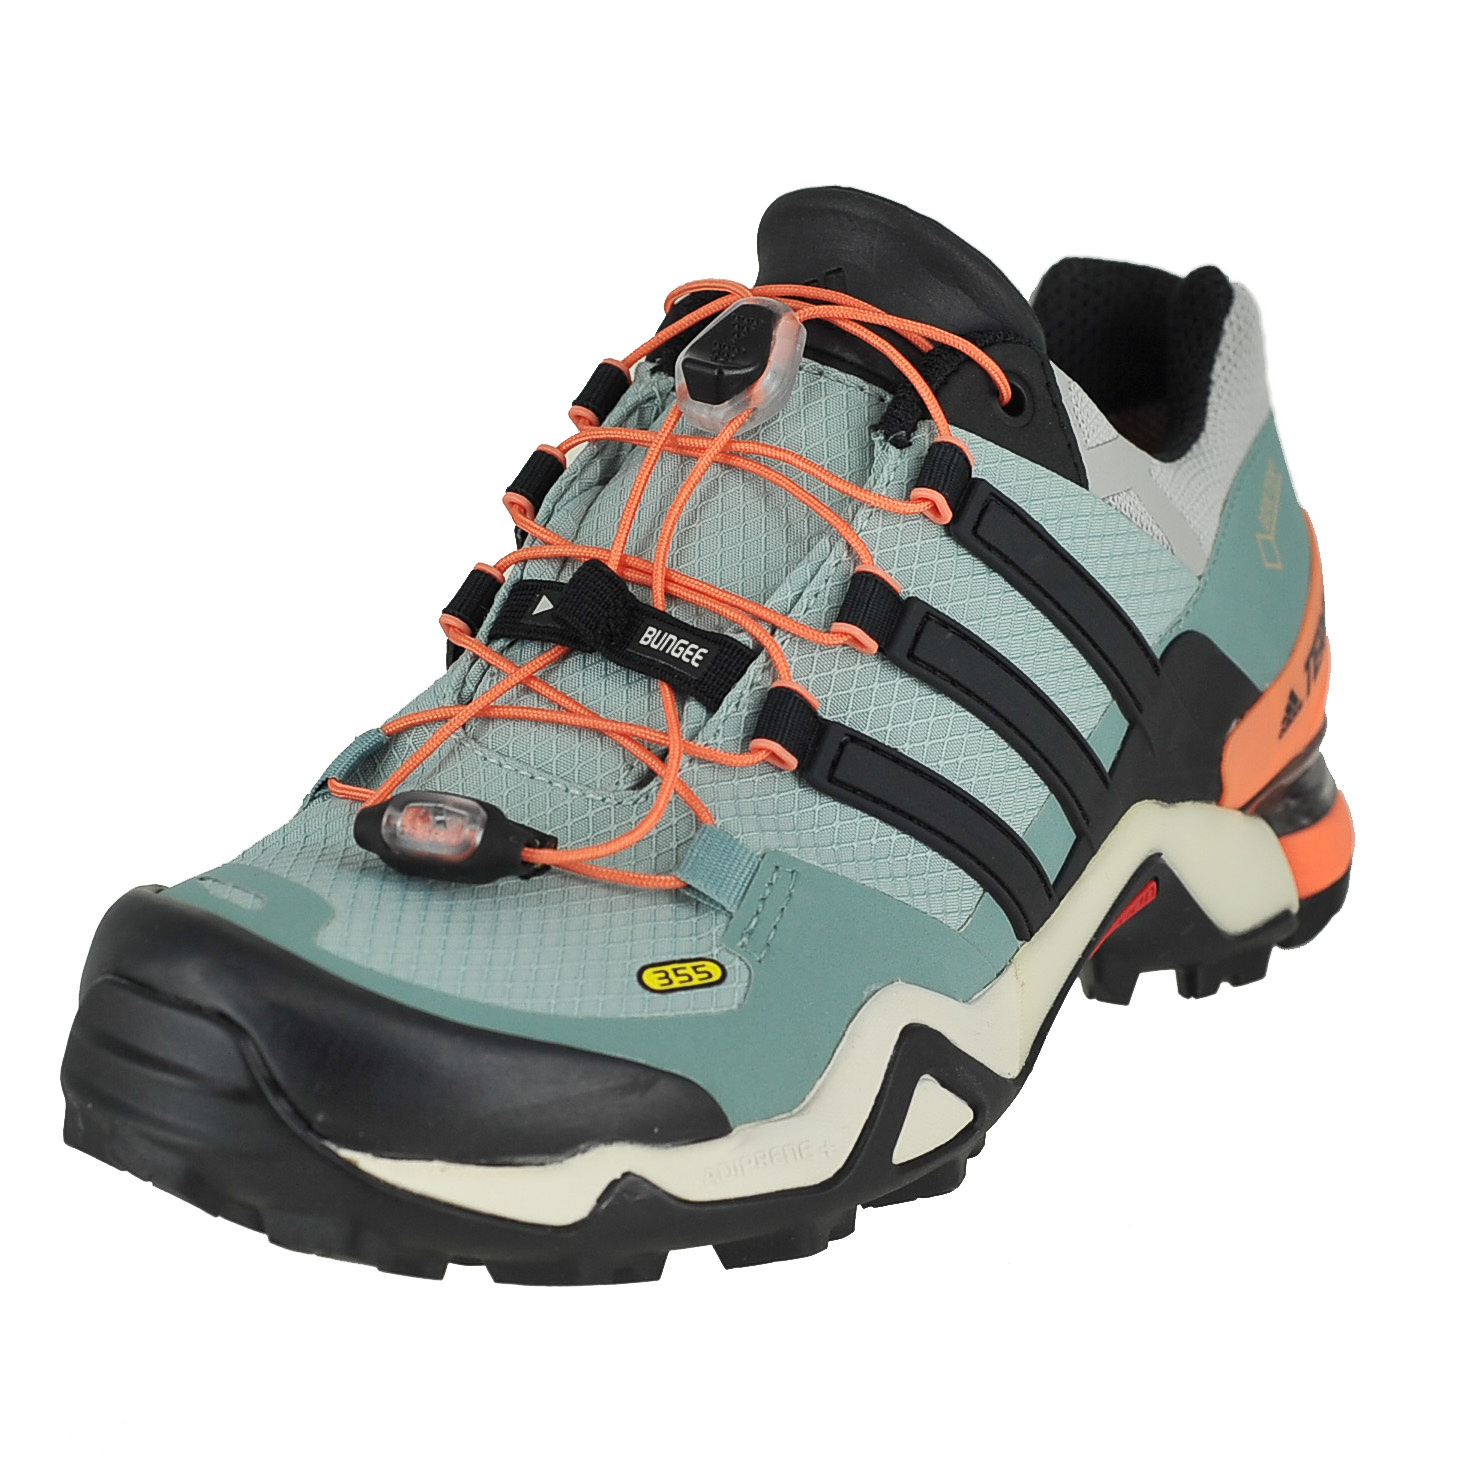 a7a90acfb Details about Adidas Terrex Fast R Gtx Tactile Green Blk Vapour Steel Womens  Hiking Shoe 10M